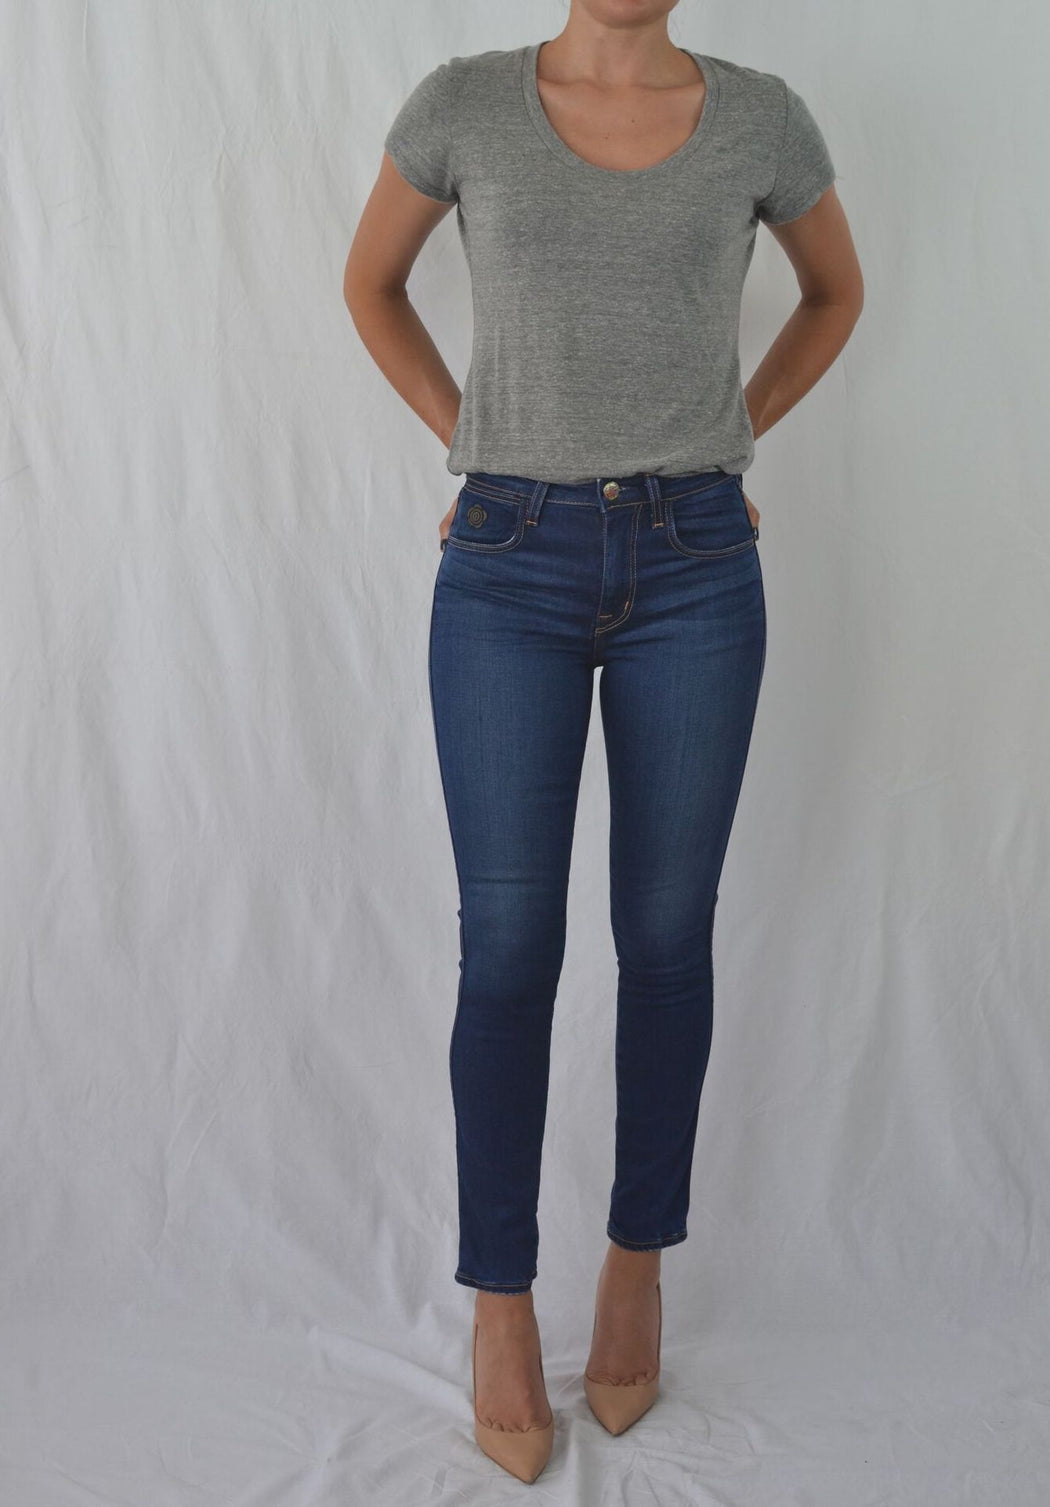 RECYCLED TRUTH HIGH RISE SKINNY JEAN IN SPIRIT WASH